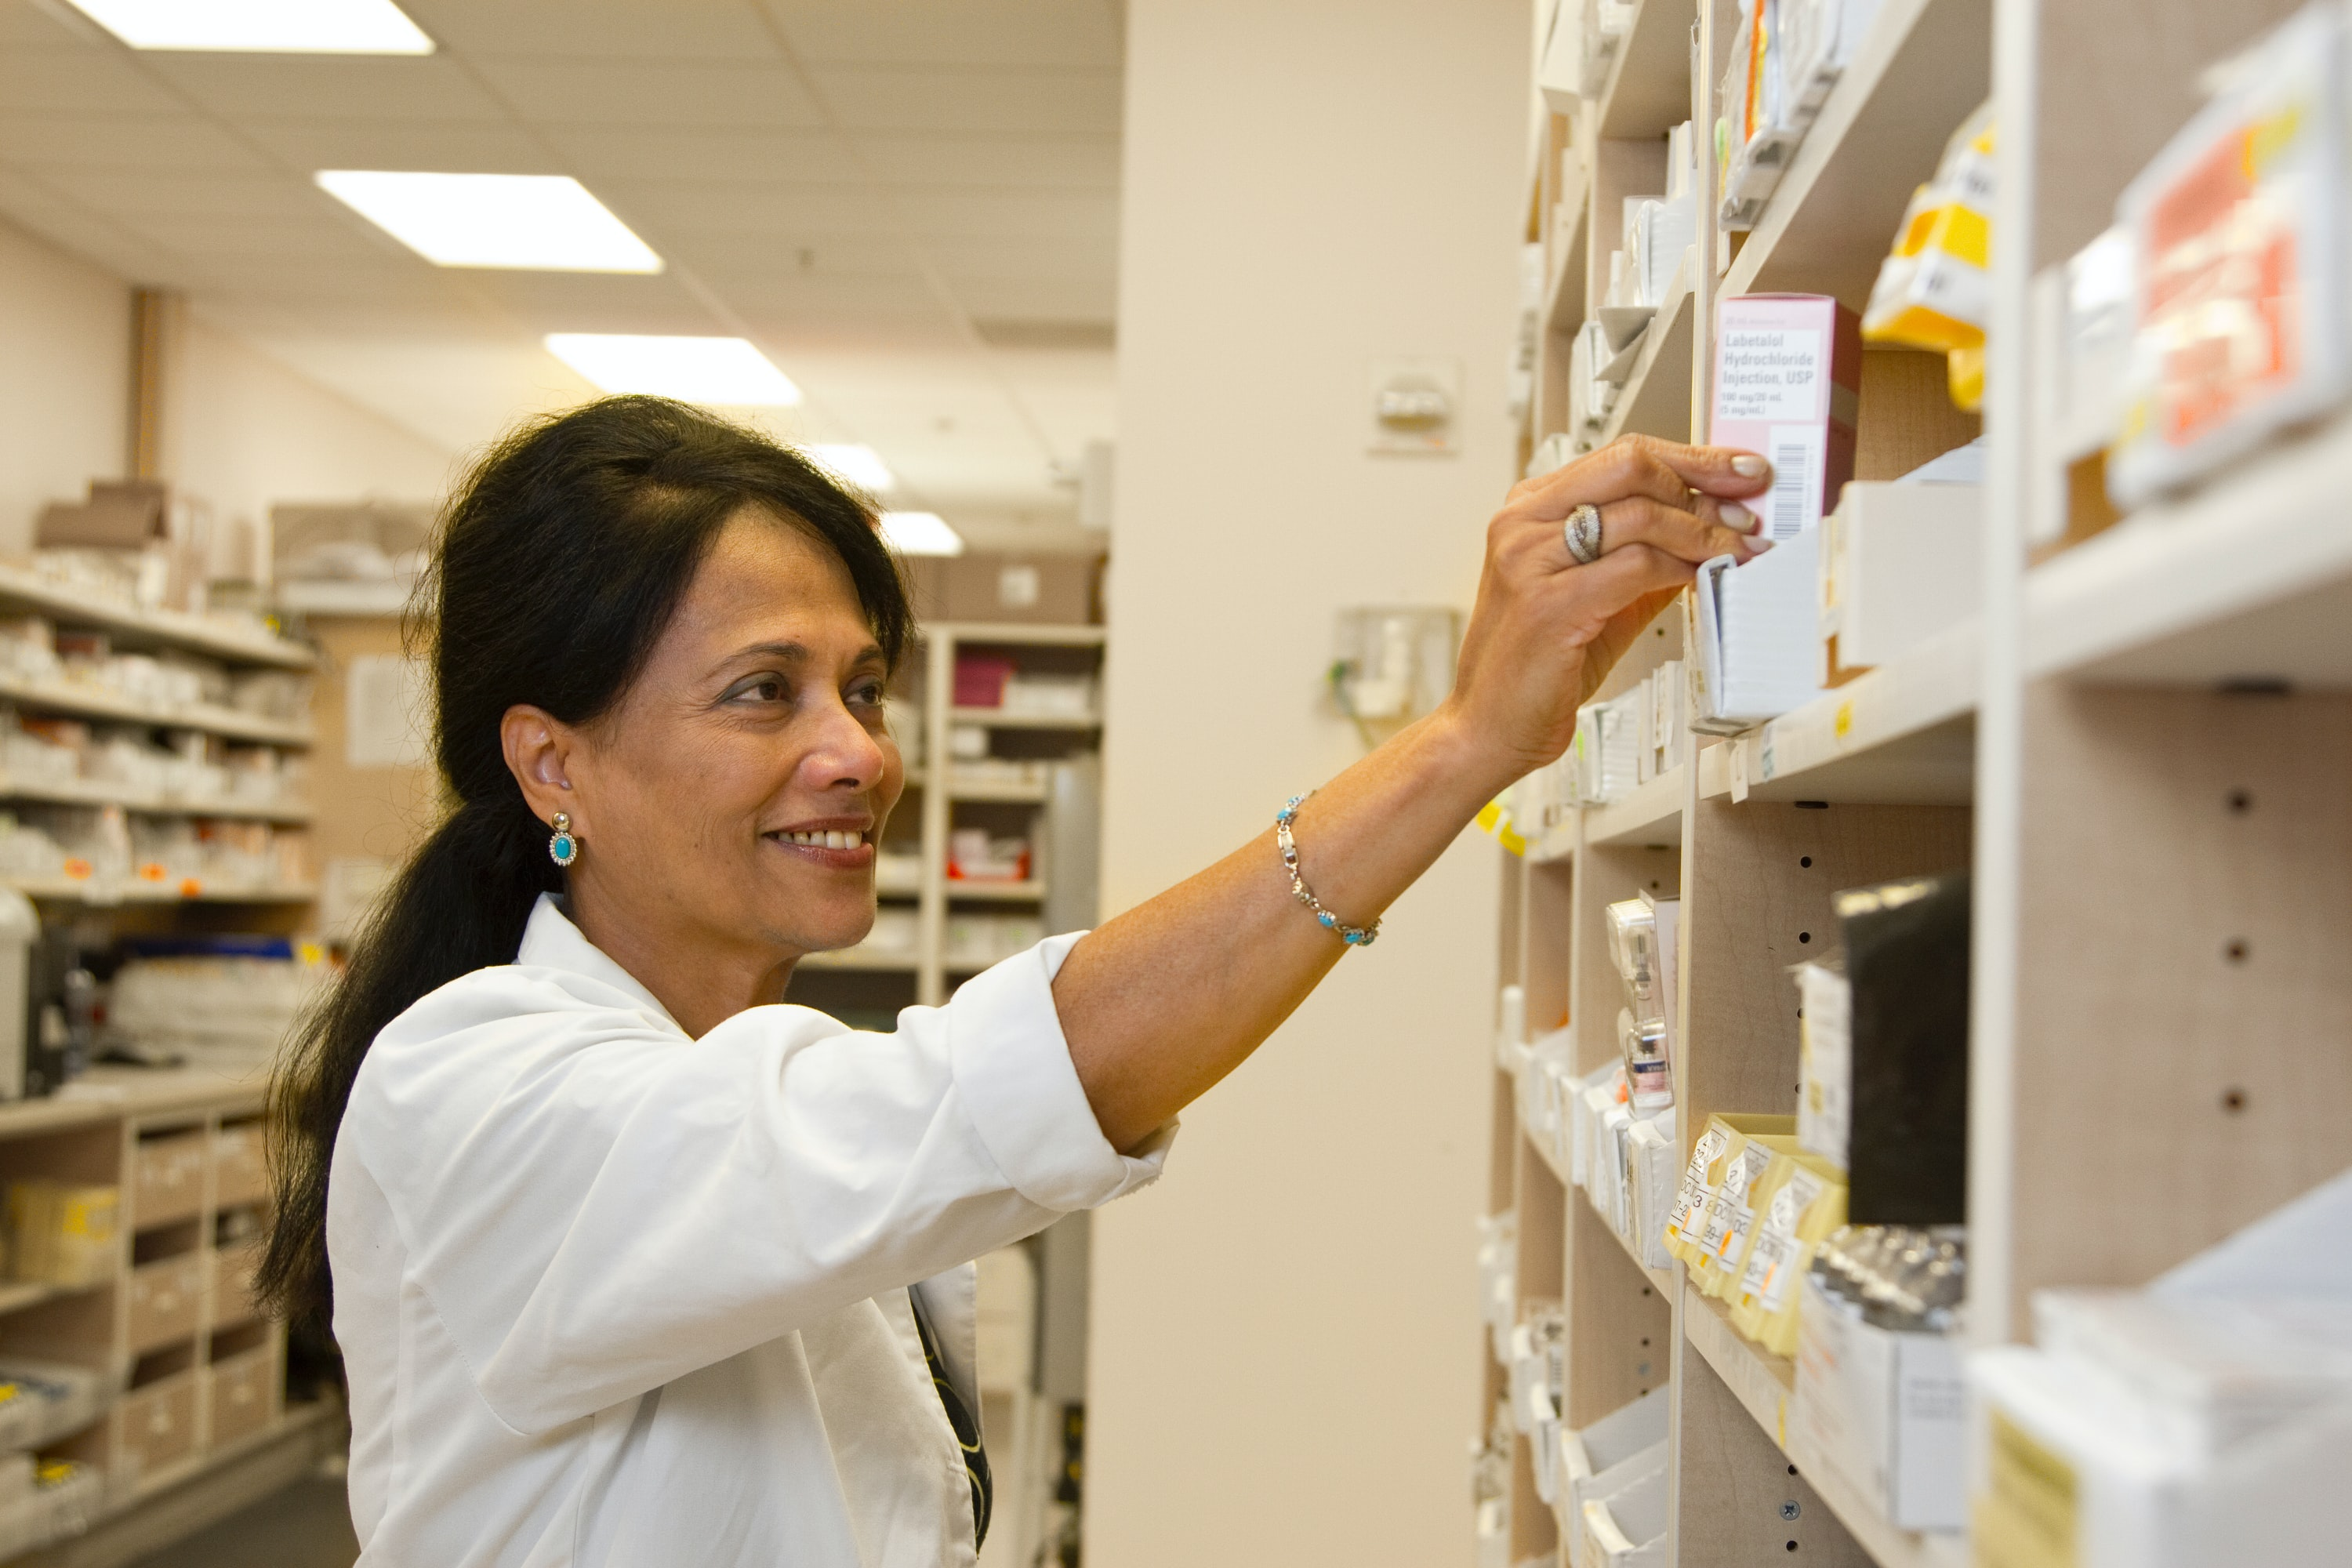 woman in white coat reaching into medical cabinet